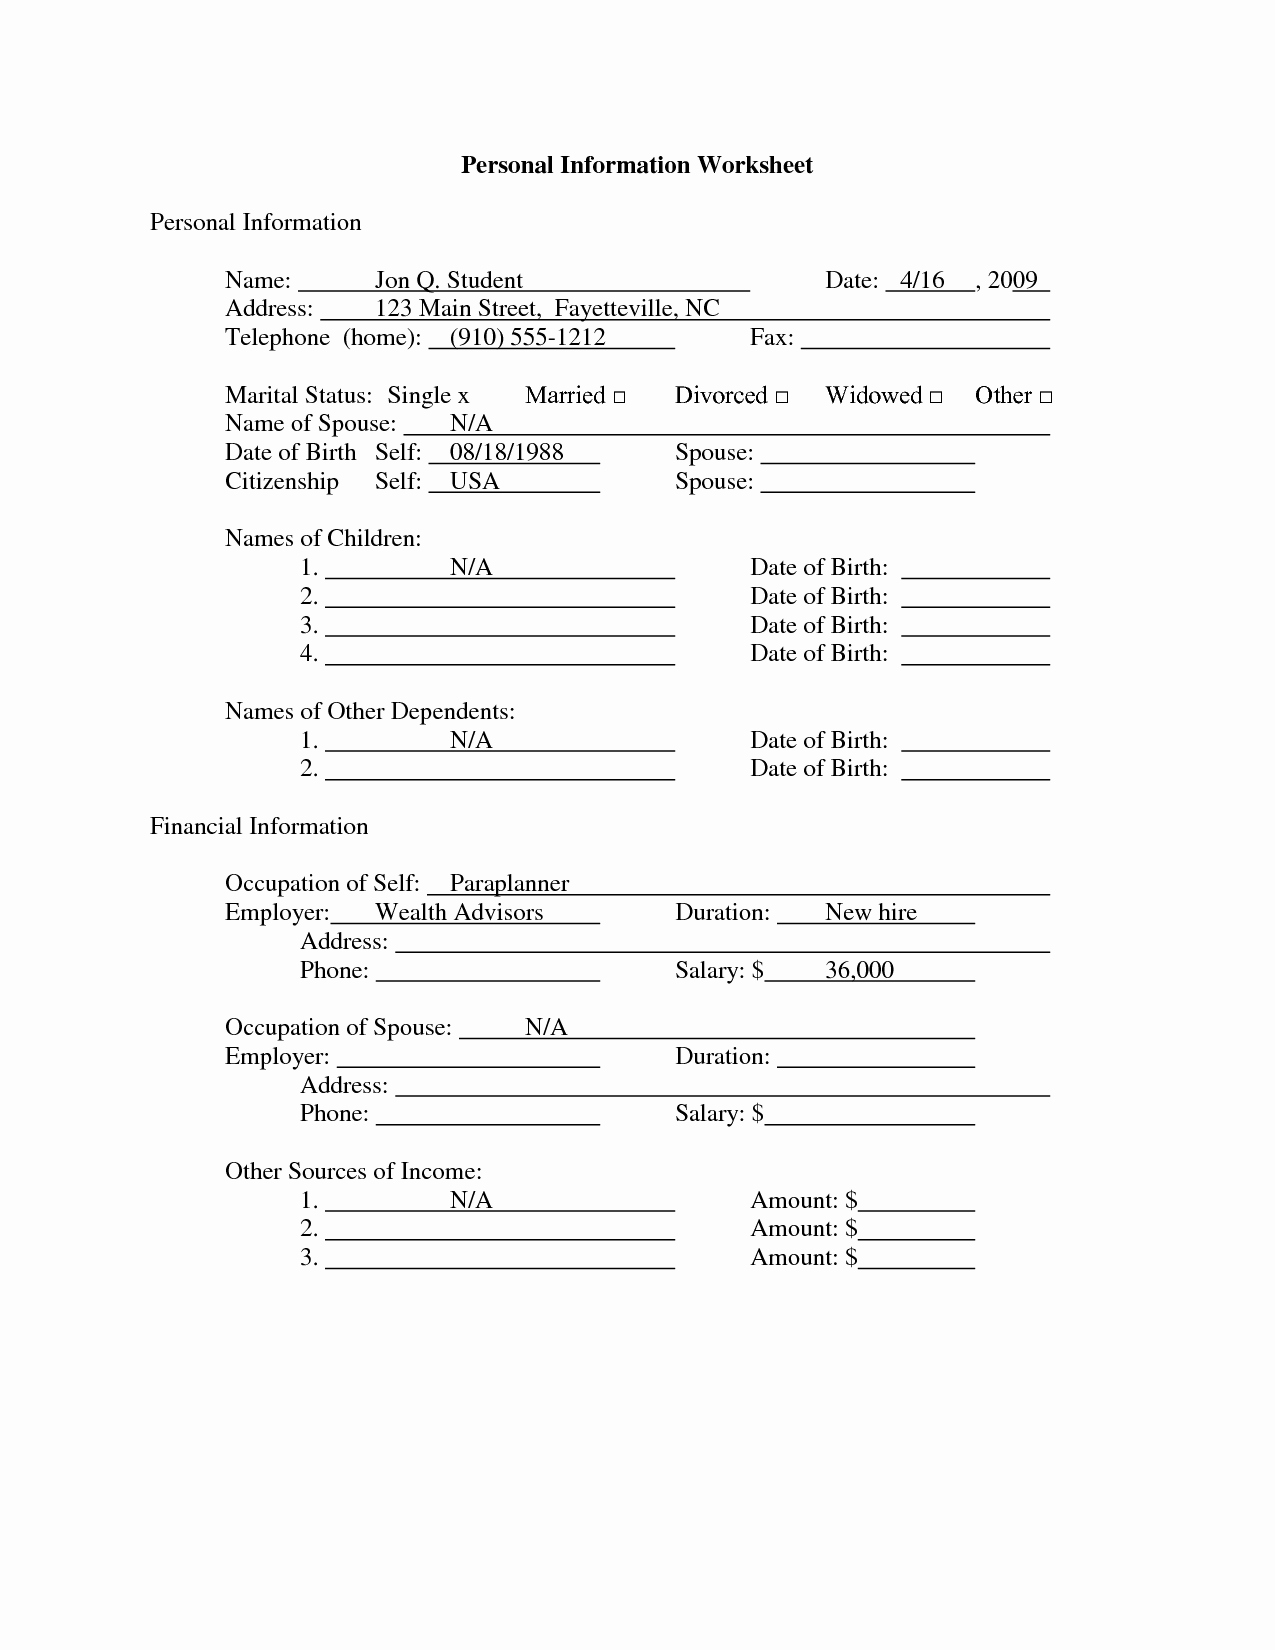 Personal Information form for Students Elegant 14 Best Of Student Information Worksheet Student